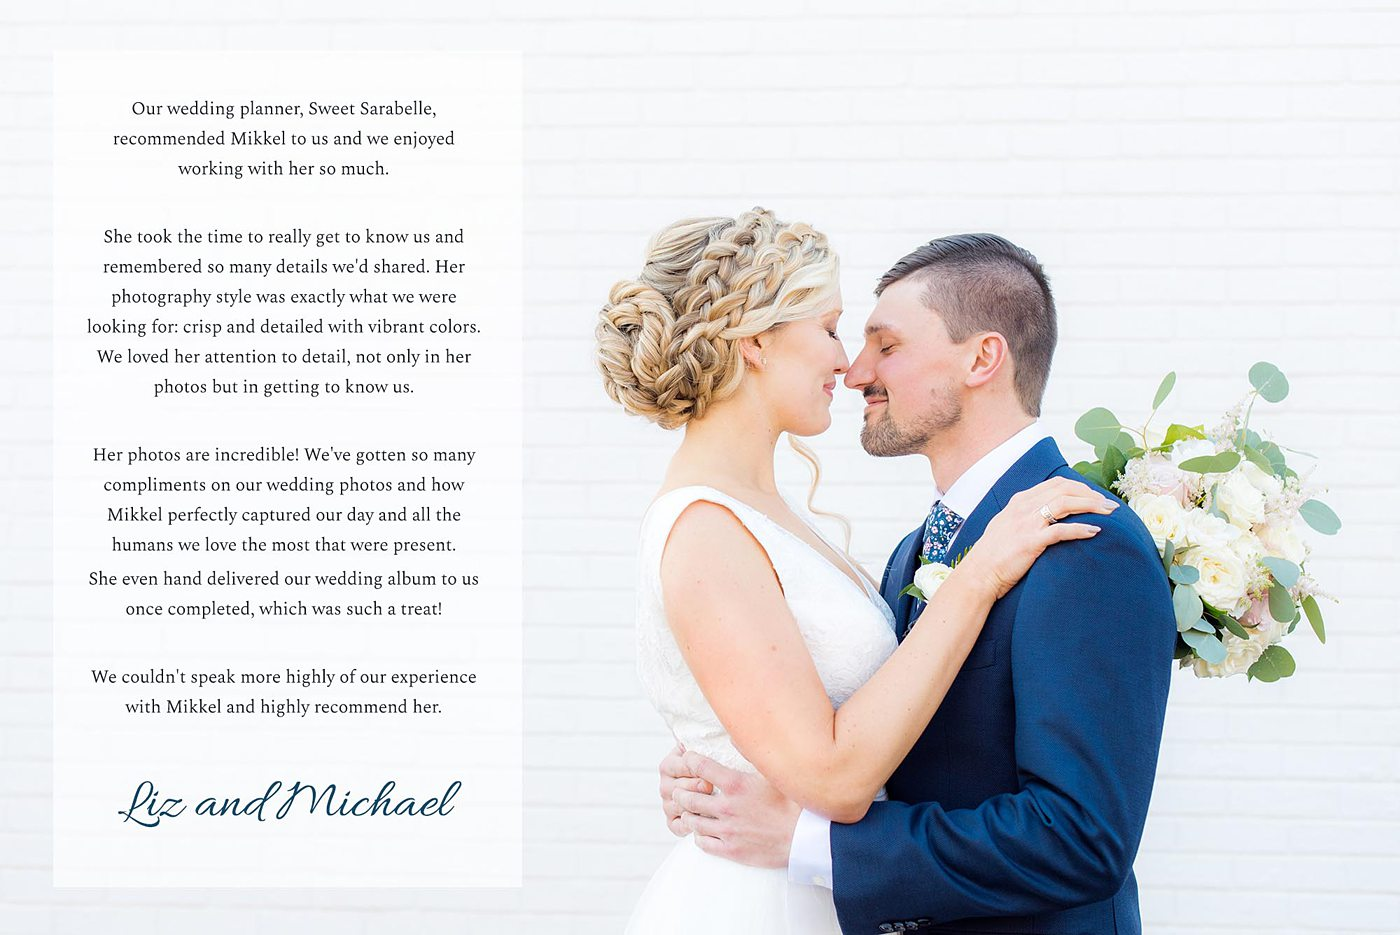 Destination wedding photographer, Mikkel Paige Photography, testimonials and reviews from luxury wedding clients at in Cary, North Carolina.